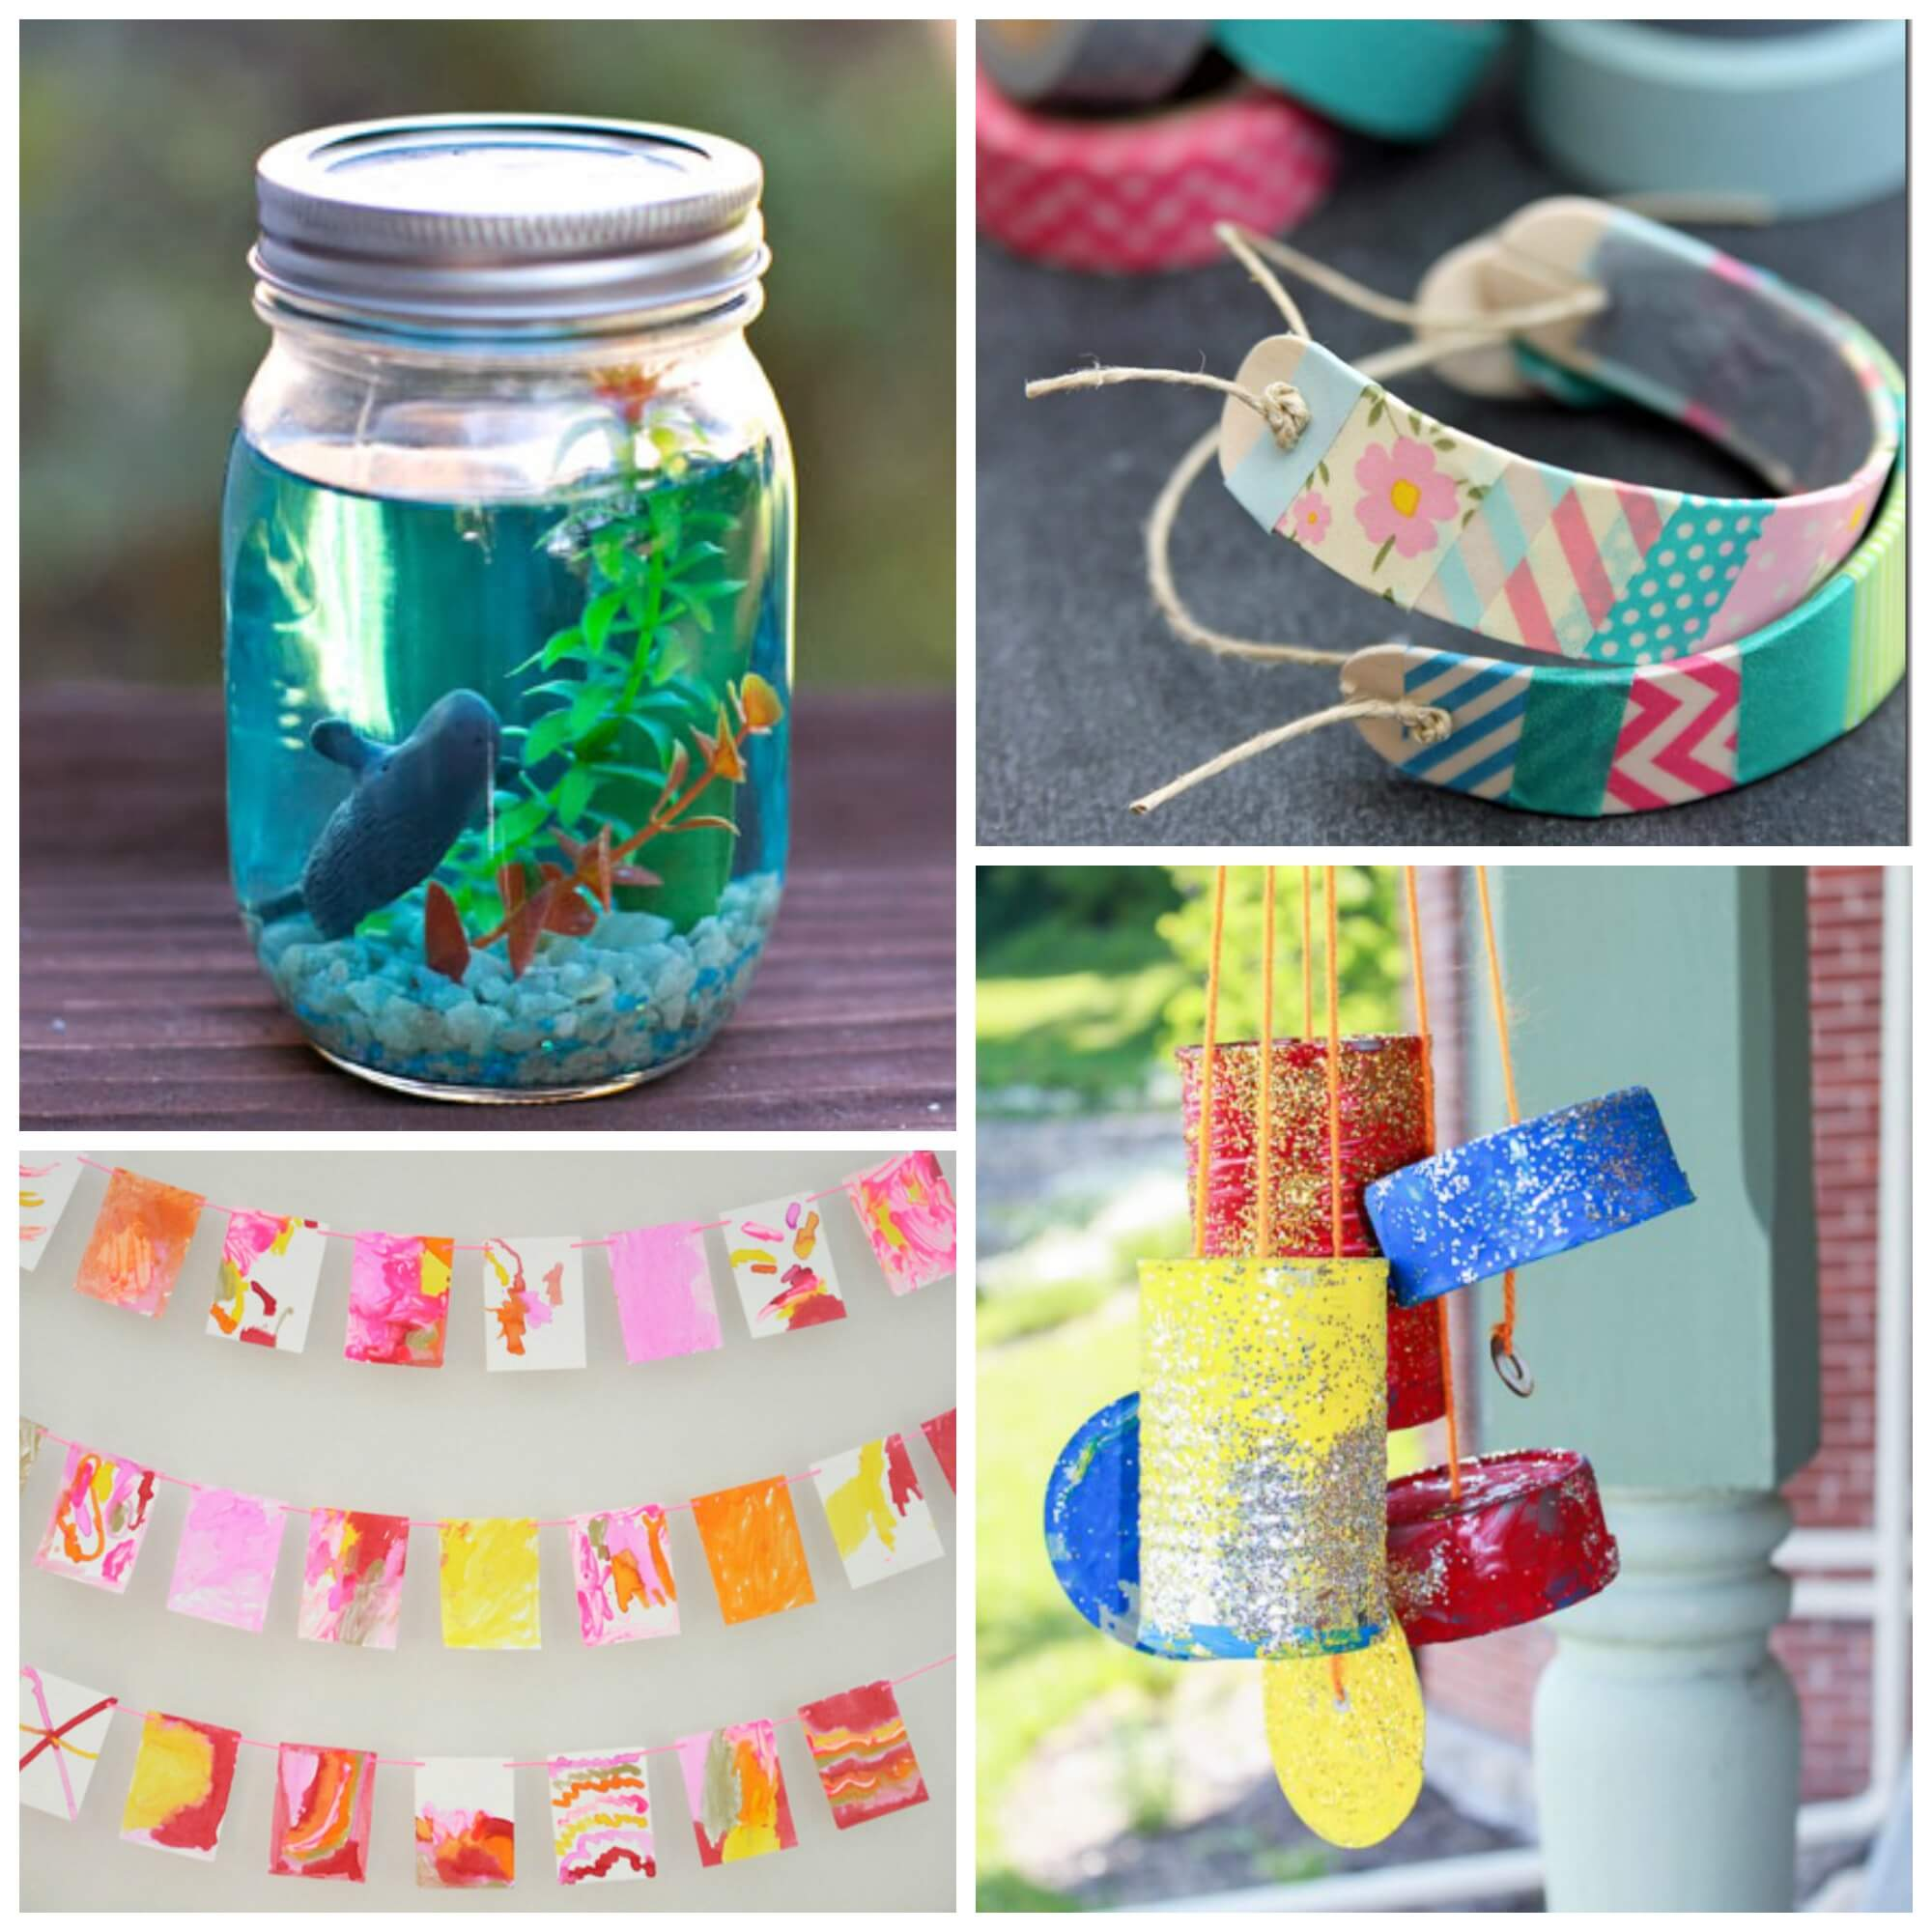 15 Arts And Crafts For Kids